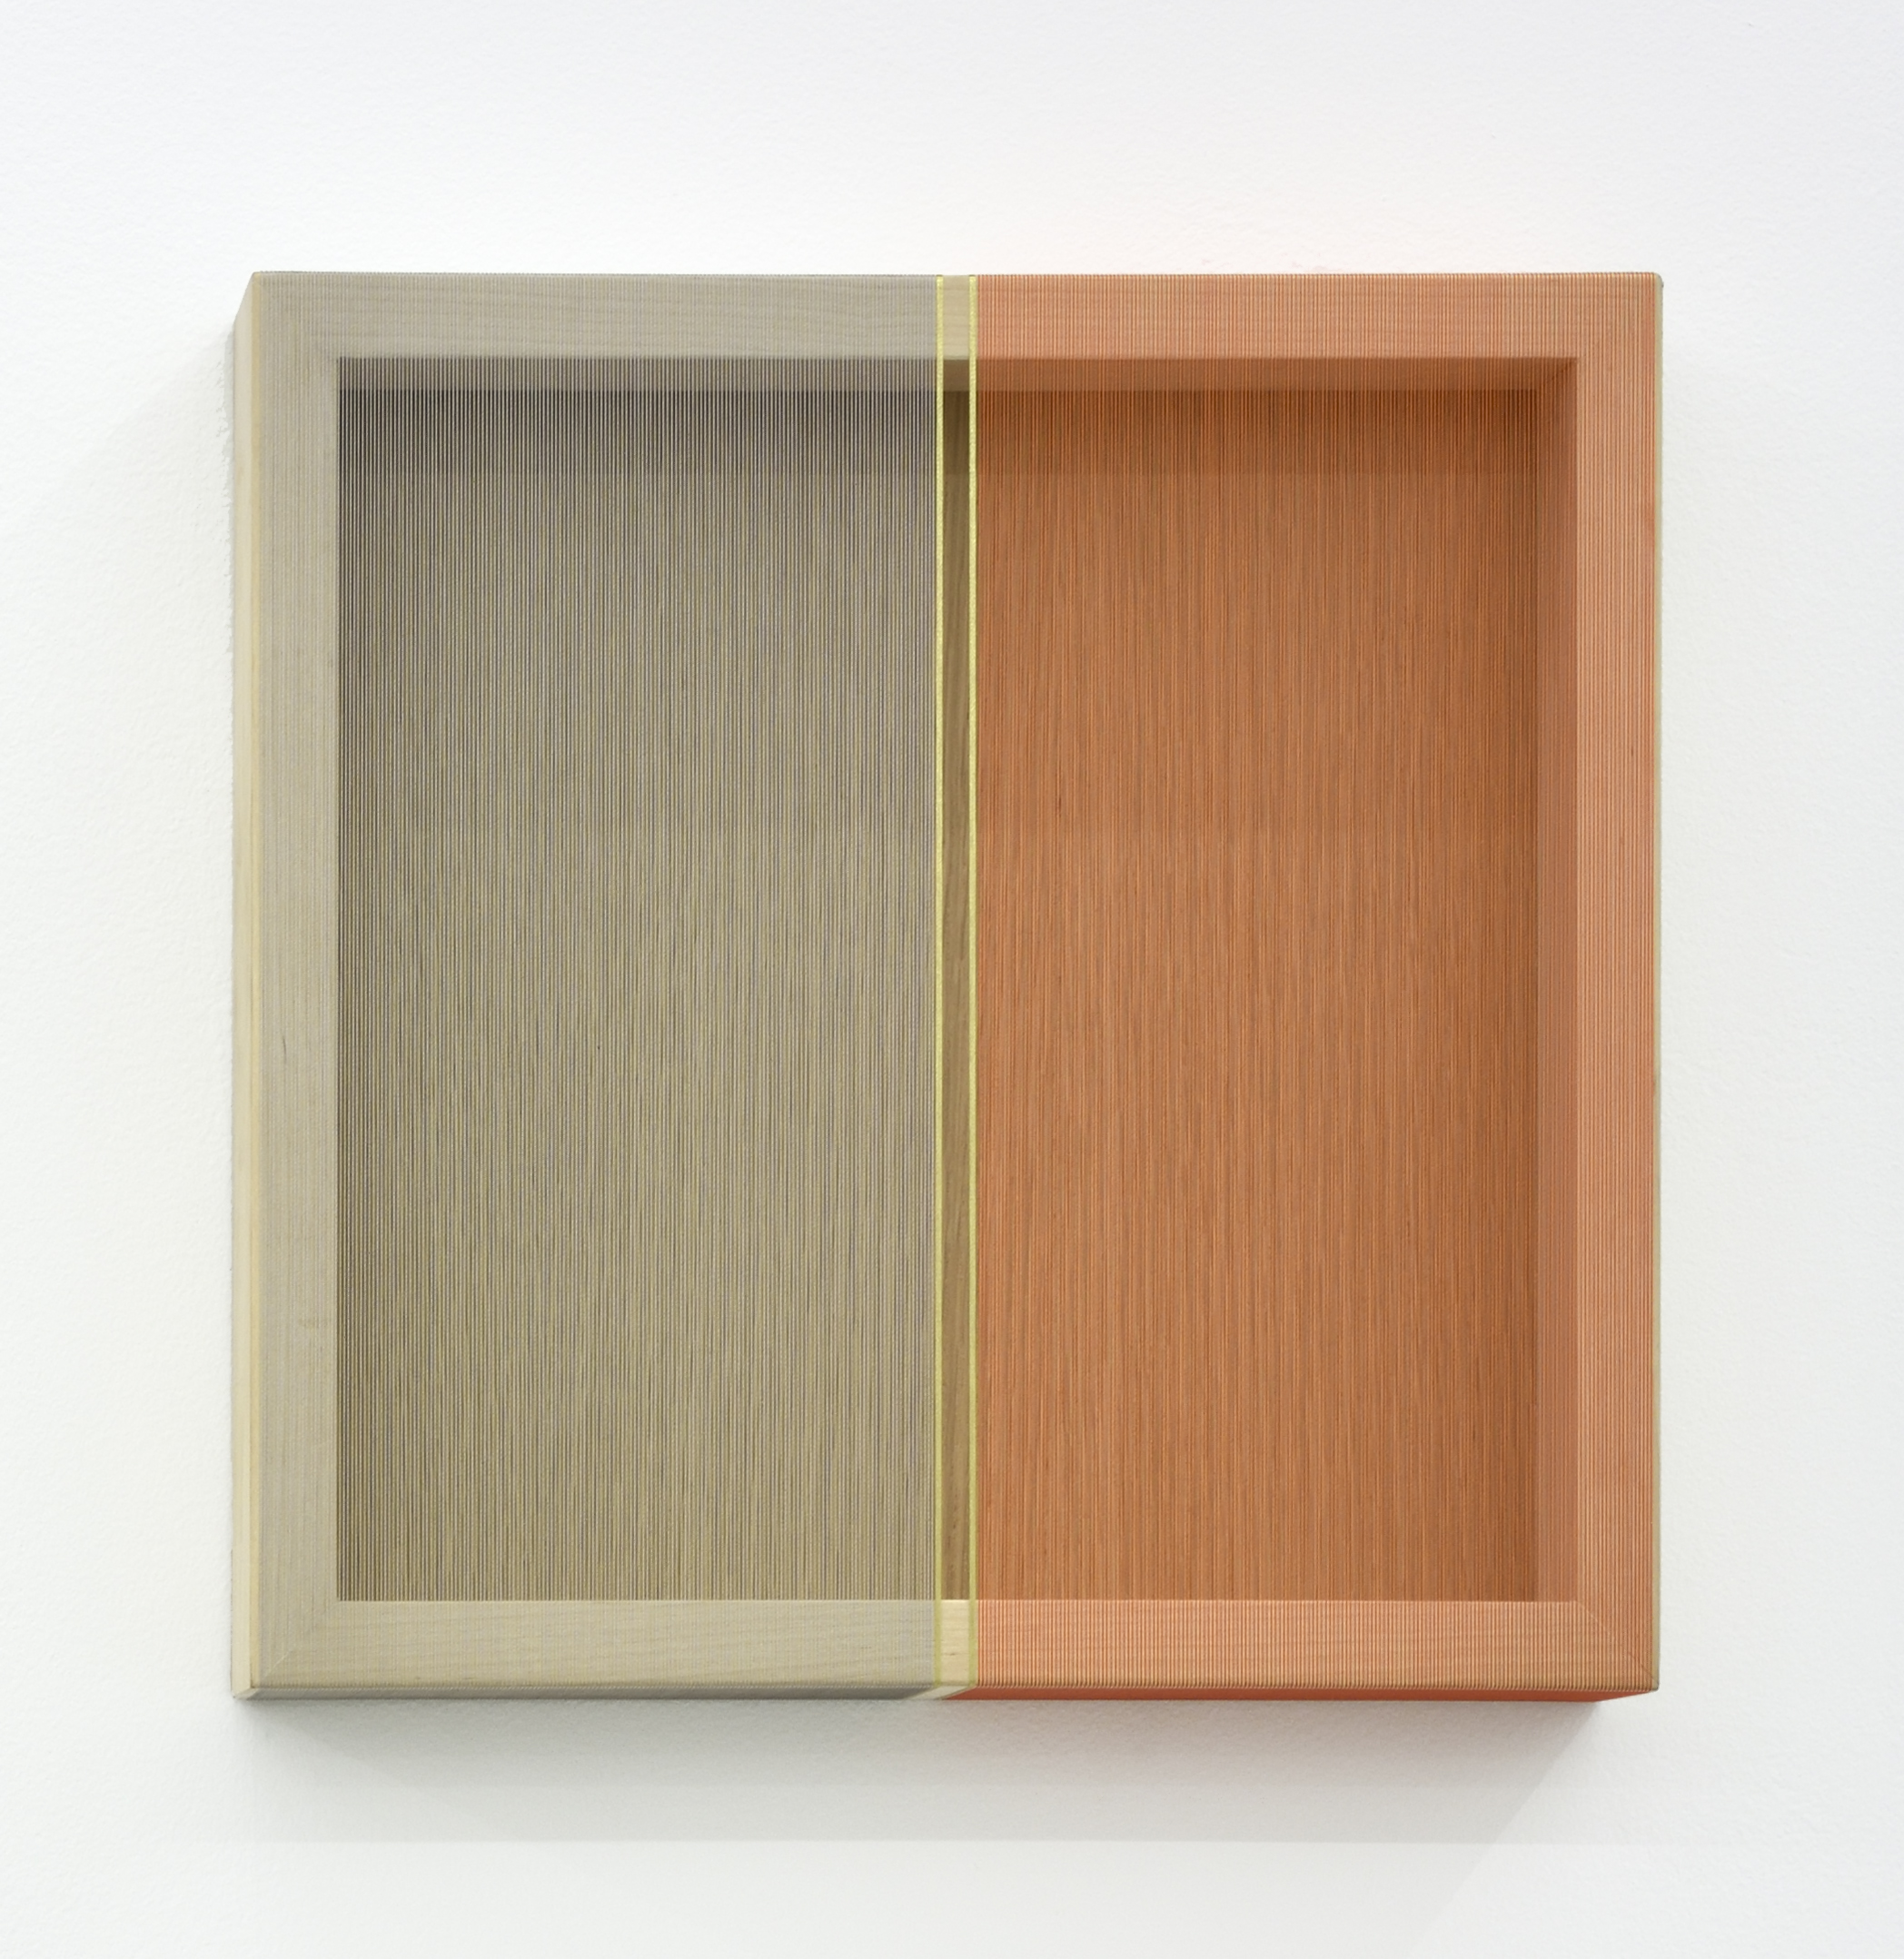 Untitled (Multi-colored hovering thread), 2016 single-strand rayon thread and metallic thread on wood 30,5 x 30,5 cm - 12 x 12 inches